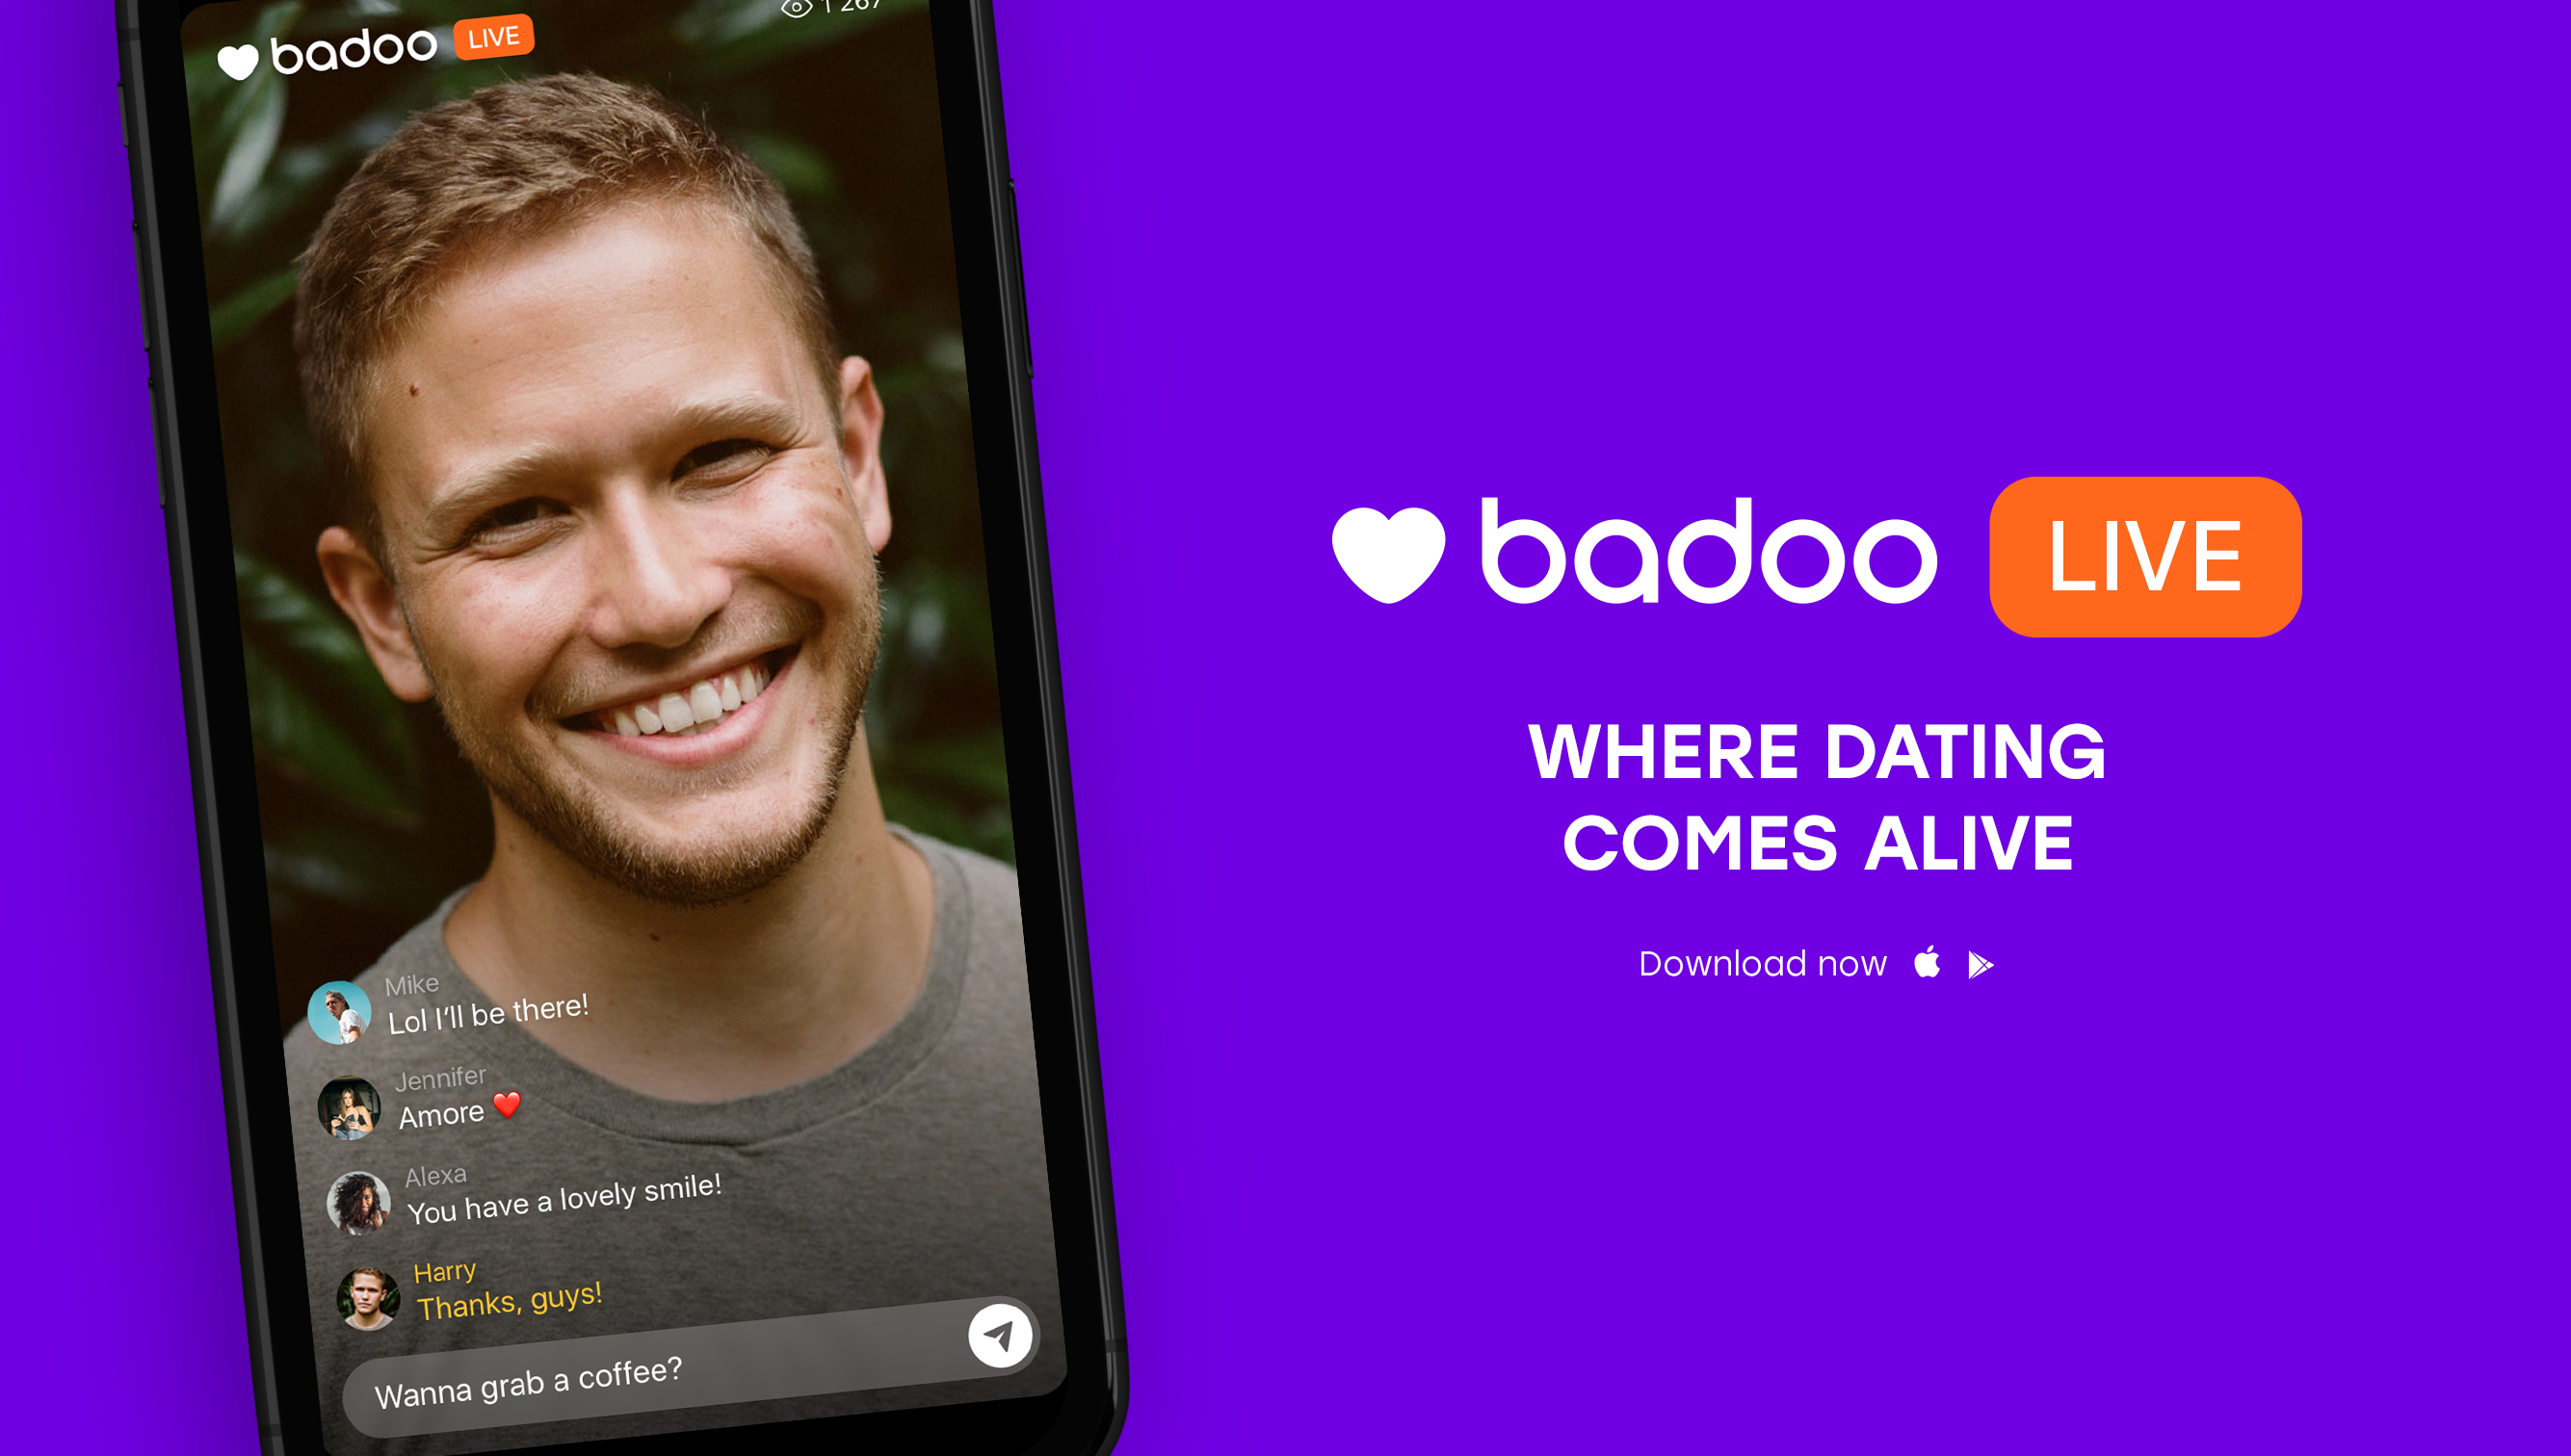 How to find someone by name on badoo